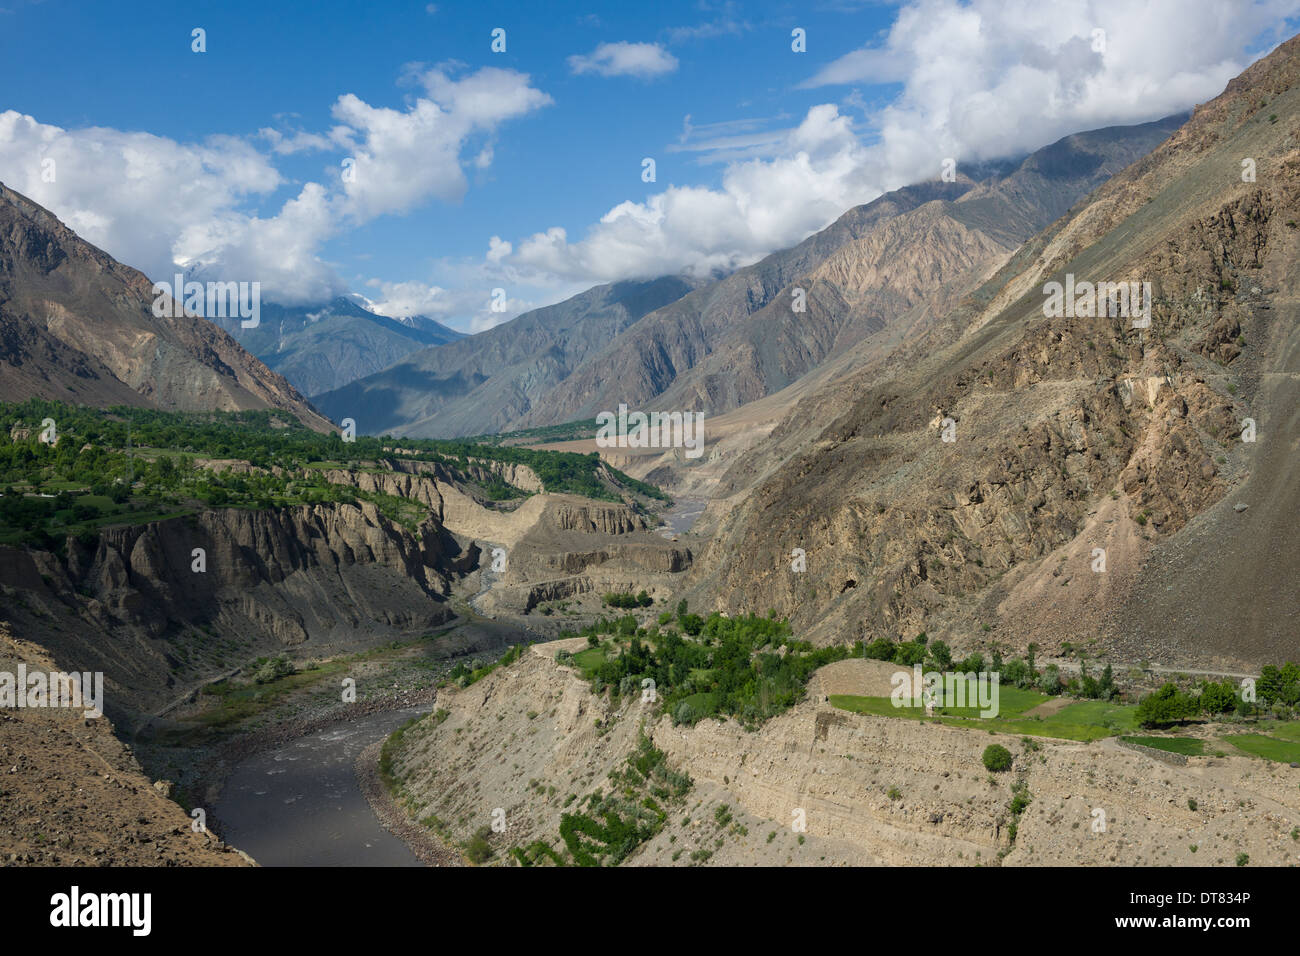 Mastuj River valley seen from the Chitral-Mastuj River Road, Khyber-Pakhtunkhwa (Formerly North West Frontier Province) - Stock Image